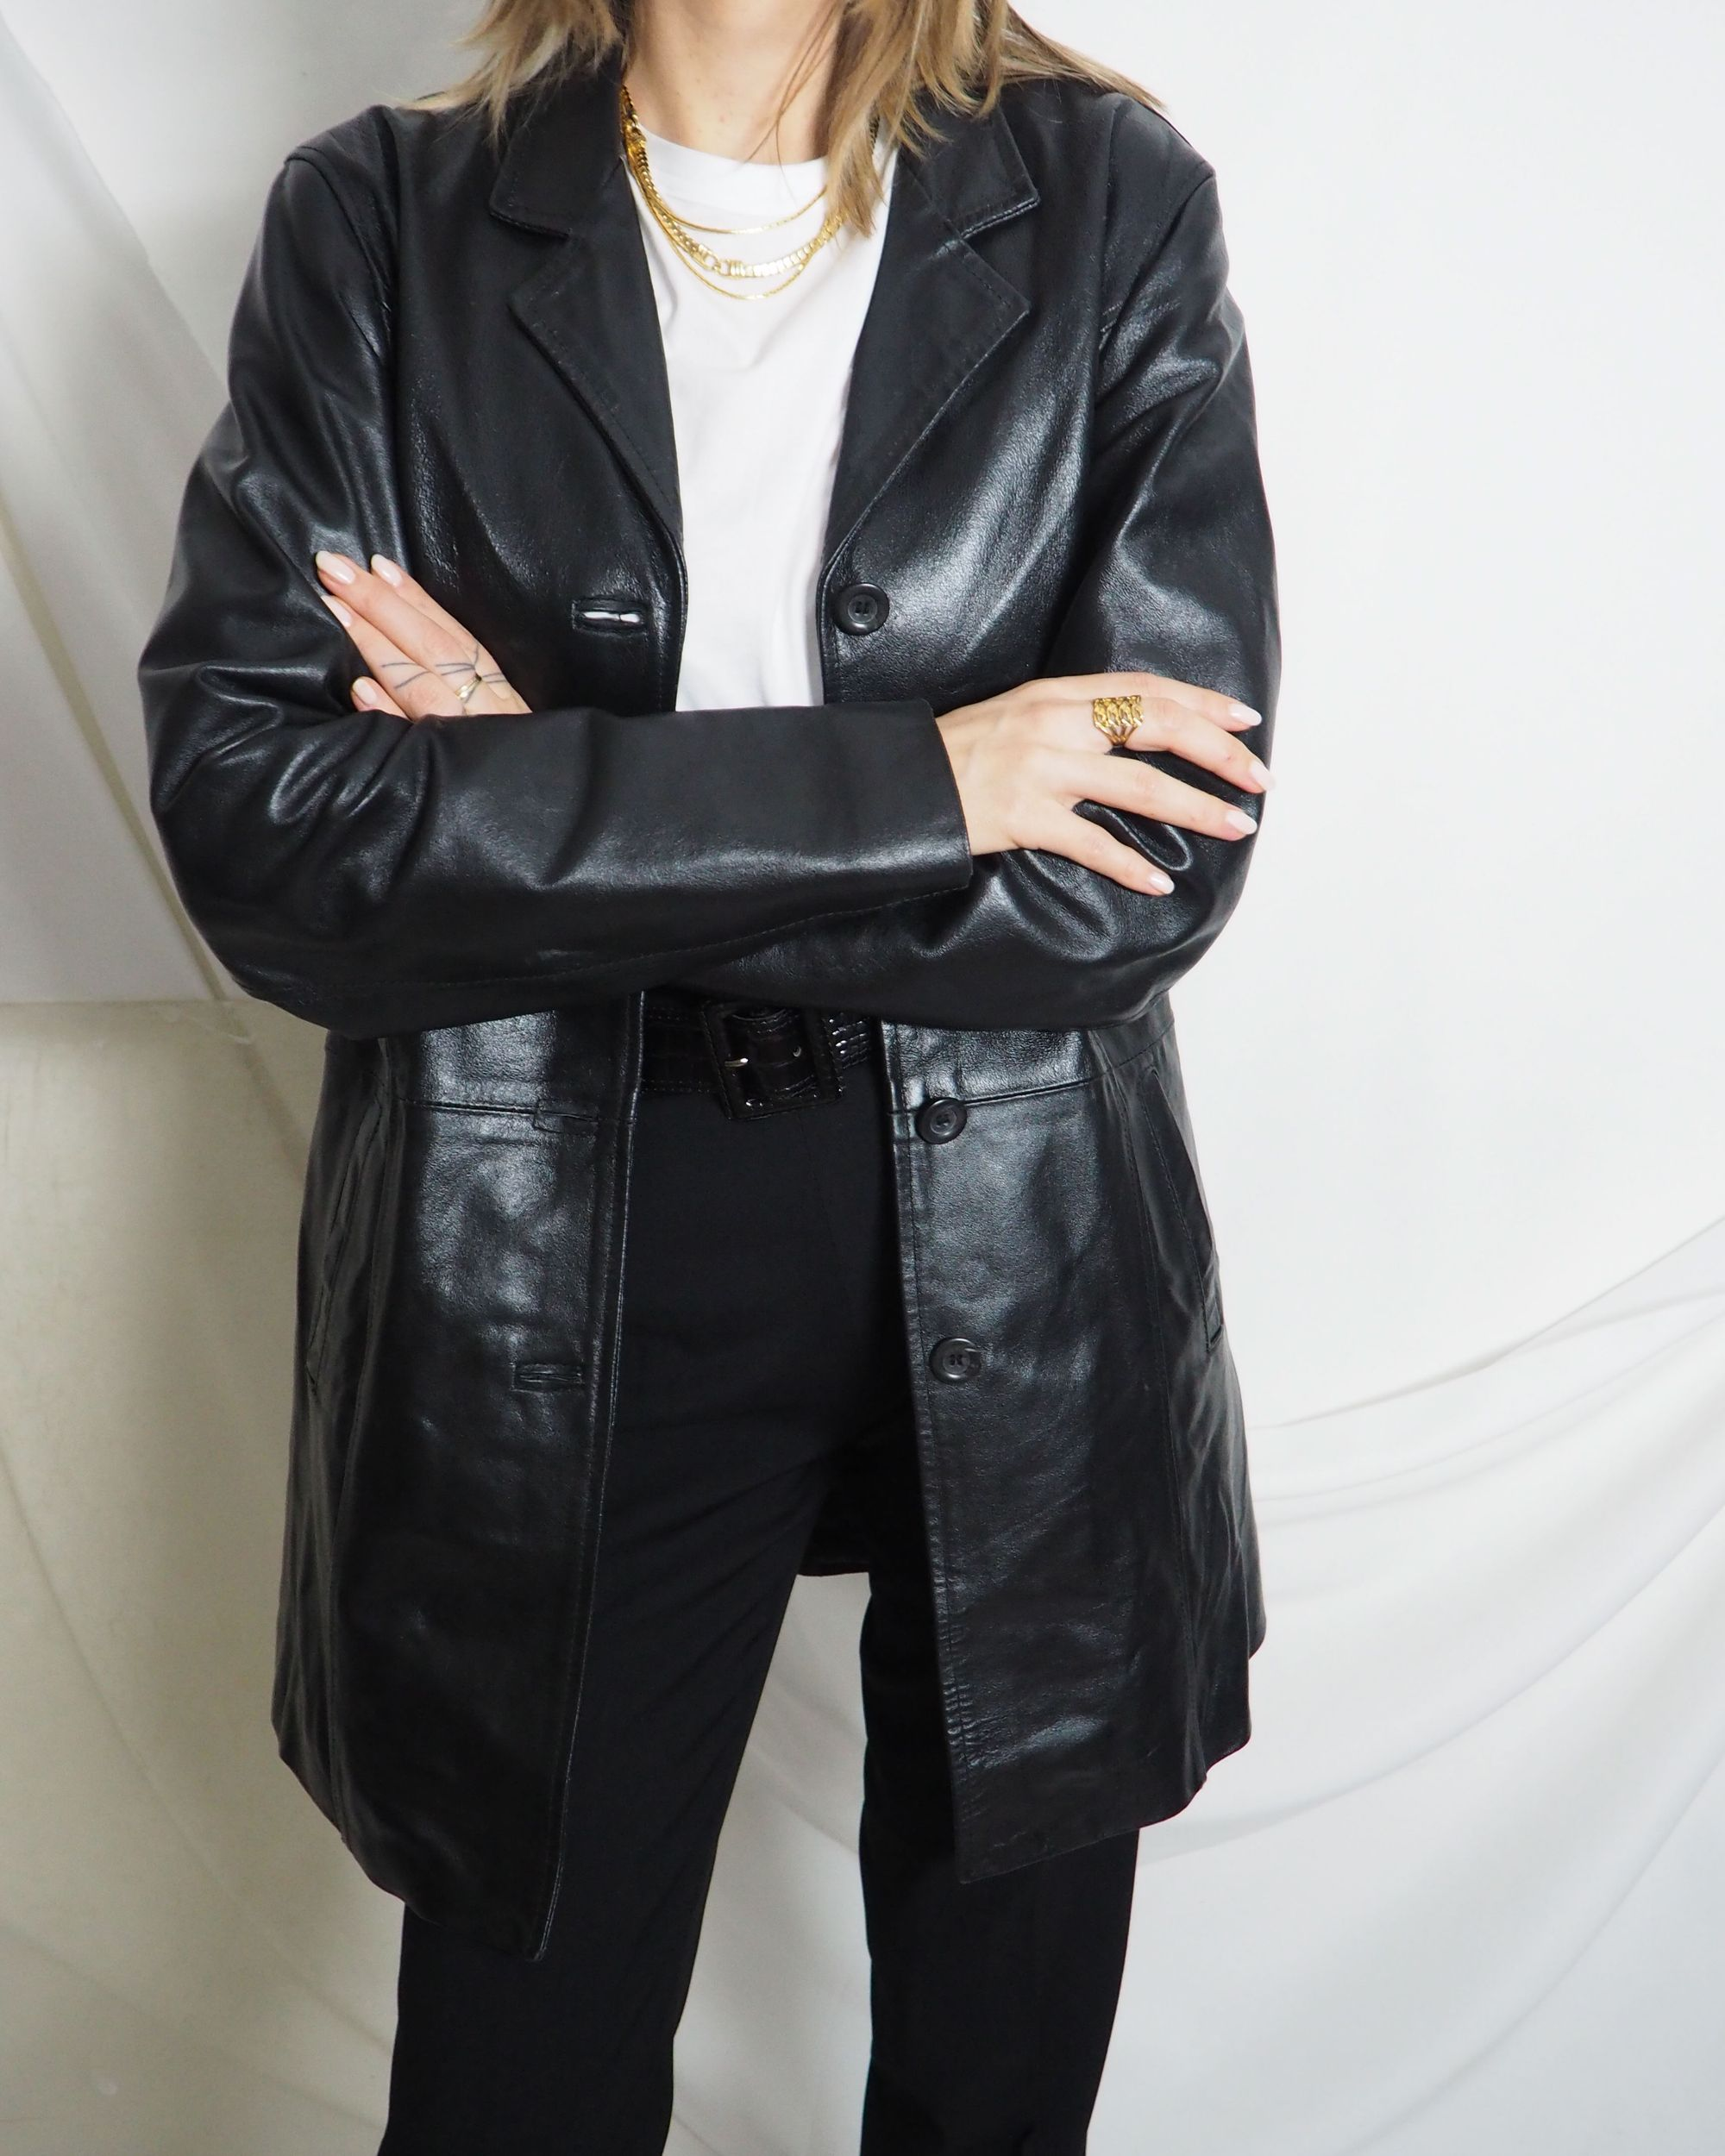 You Like Our Vintage Outfits Find Them On Our E Store Untitled1991 Com International Shipping In 2020 Black Leather Jacket Clothes Leather Jacket